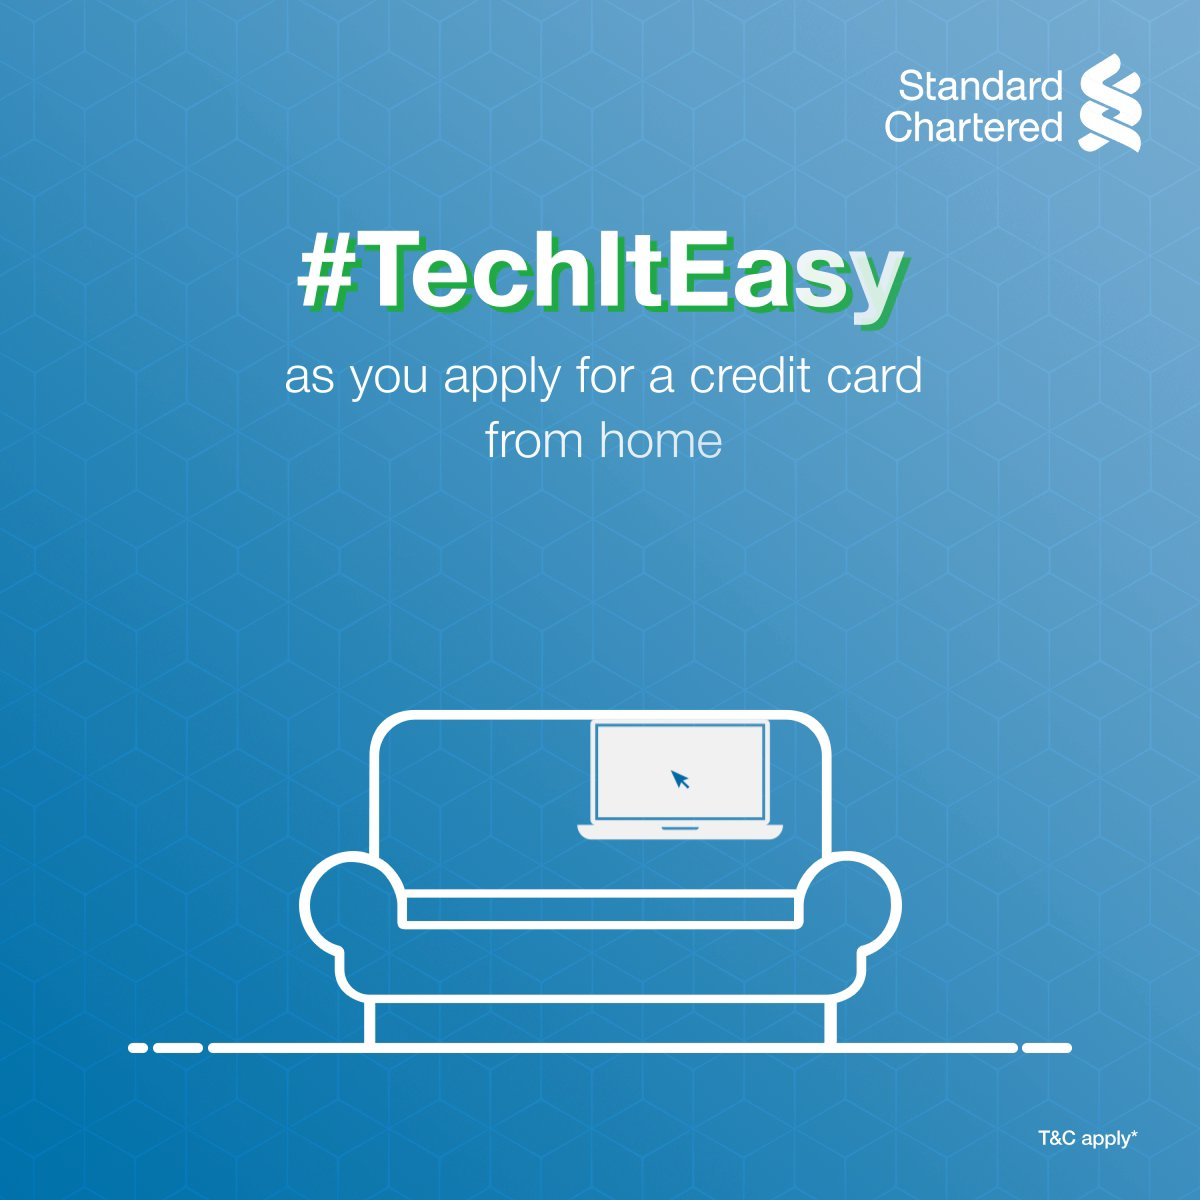 Your driver may take time, but applying for a credit card won't! #TechItEasy & enjoy privileges, without waiting for a week, with a Virtual Credit Card! ✅Fill the online form ✅Verify your documents with a Video KYC  ✅Get your credit card! To know more,